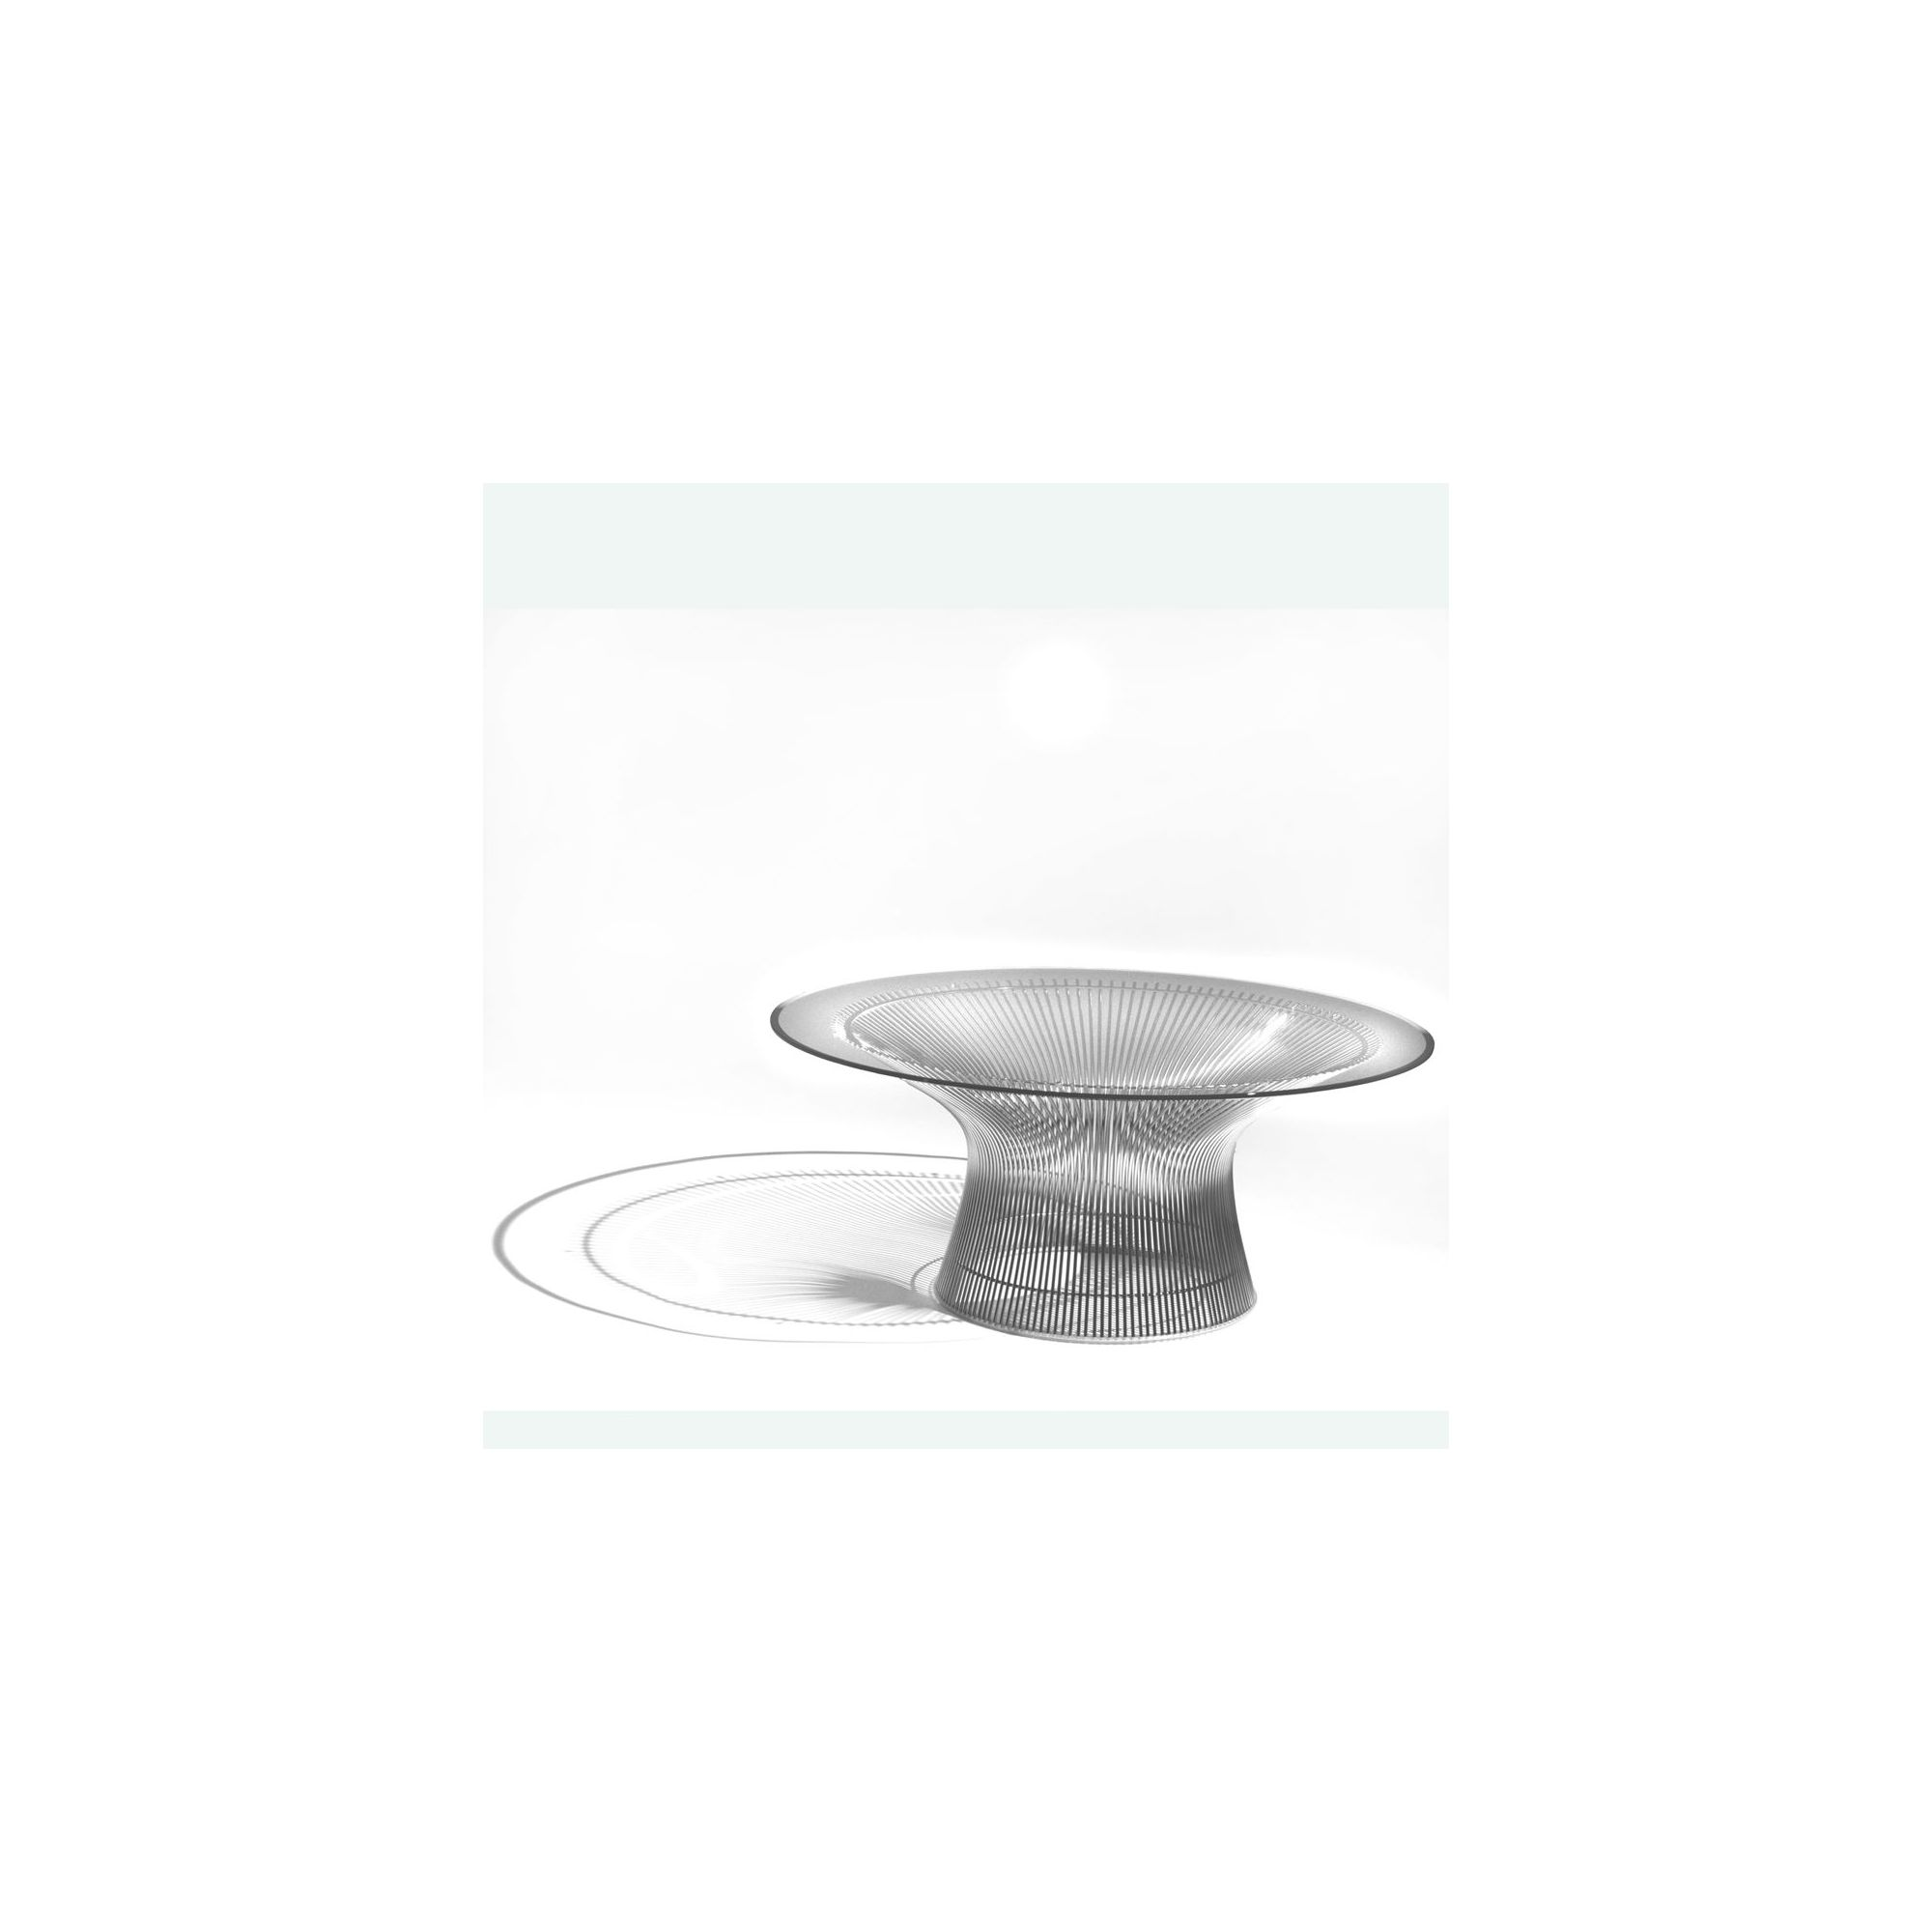 Knoll Coffee Table by Warren Platner - 107cm Dia / Polished Nickel / Clear Glass at Tesco Direct